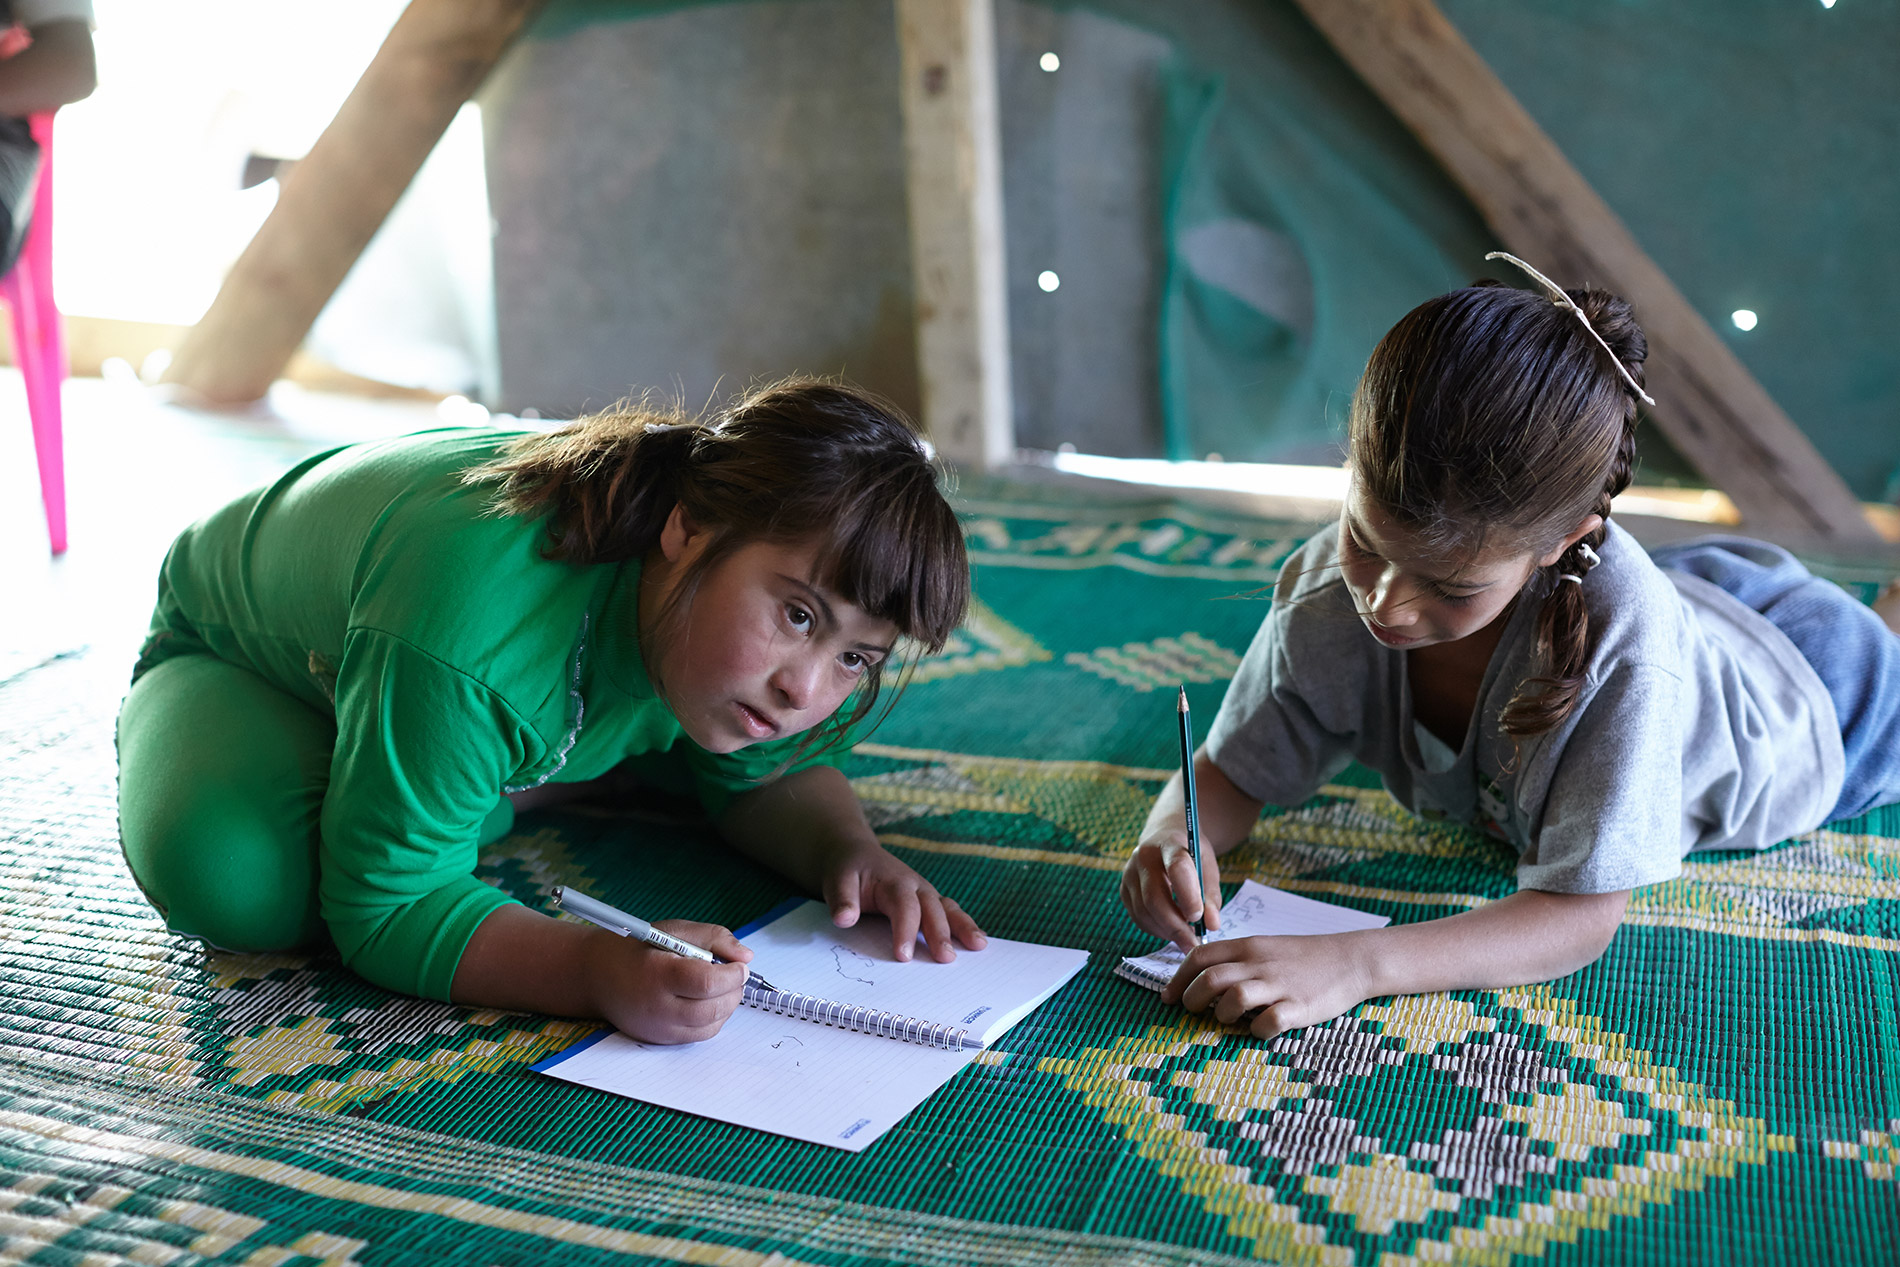 Trying to find academic sources on host countries failure to protect and provide for refugee adolescents?